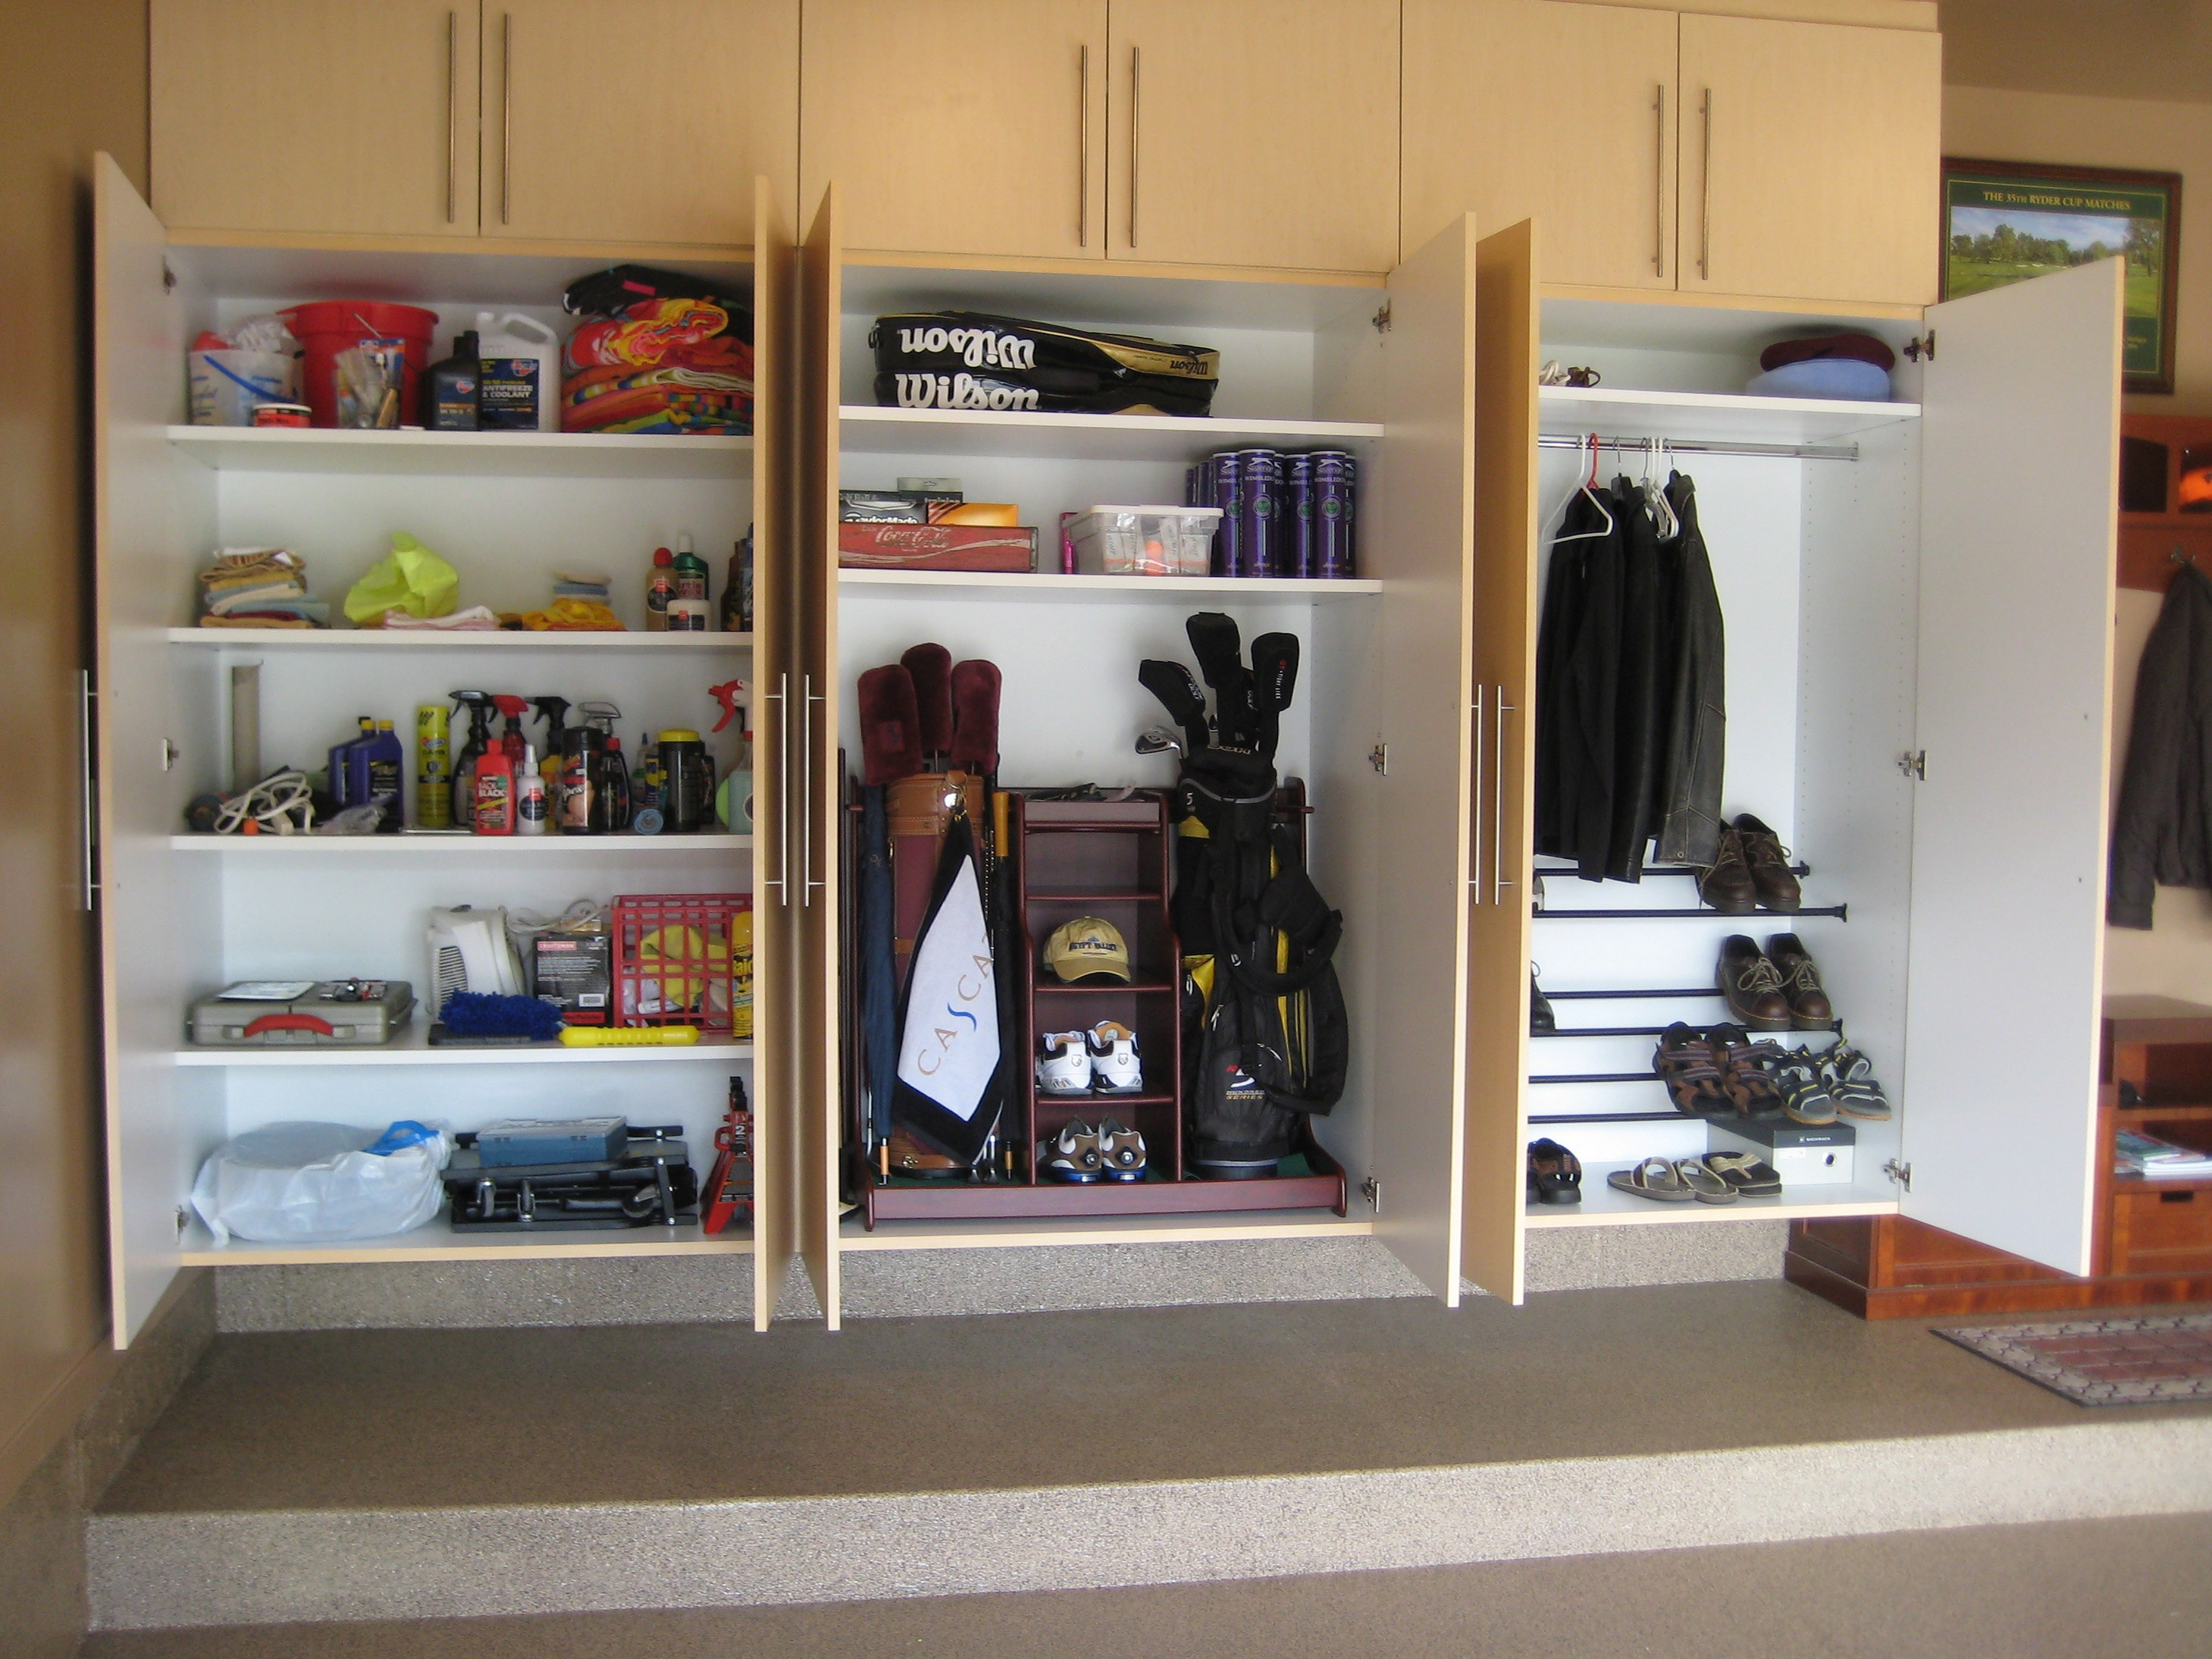 Understanding The Benefits of an Instant Garage When Renovating Your House